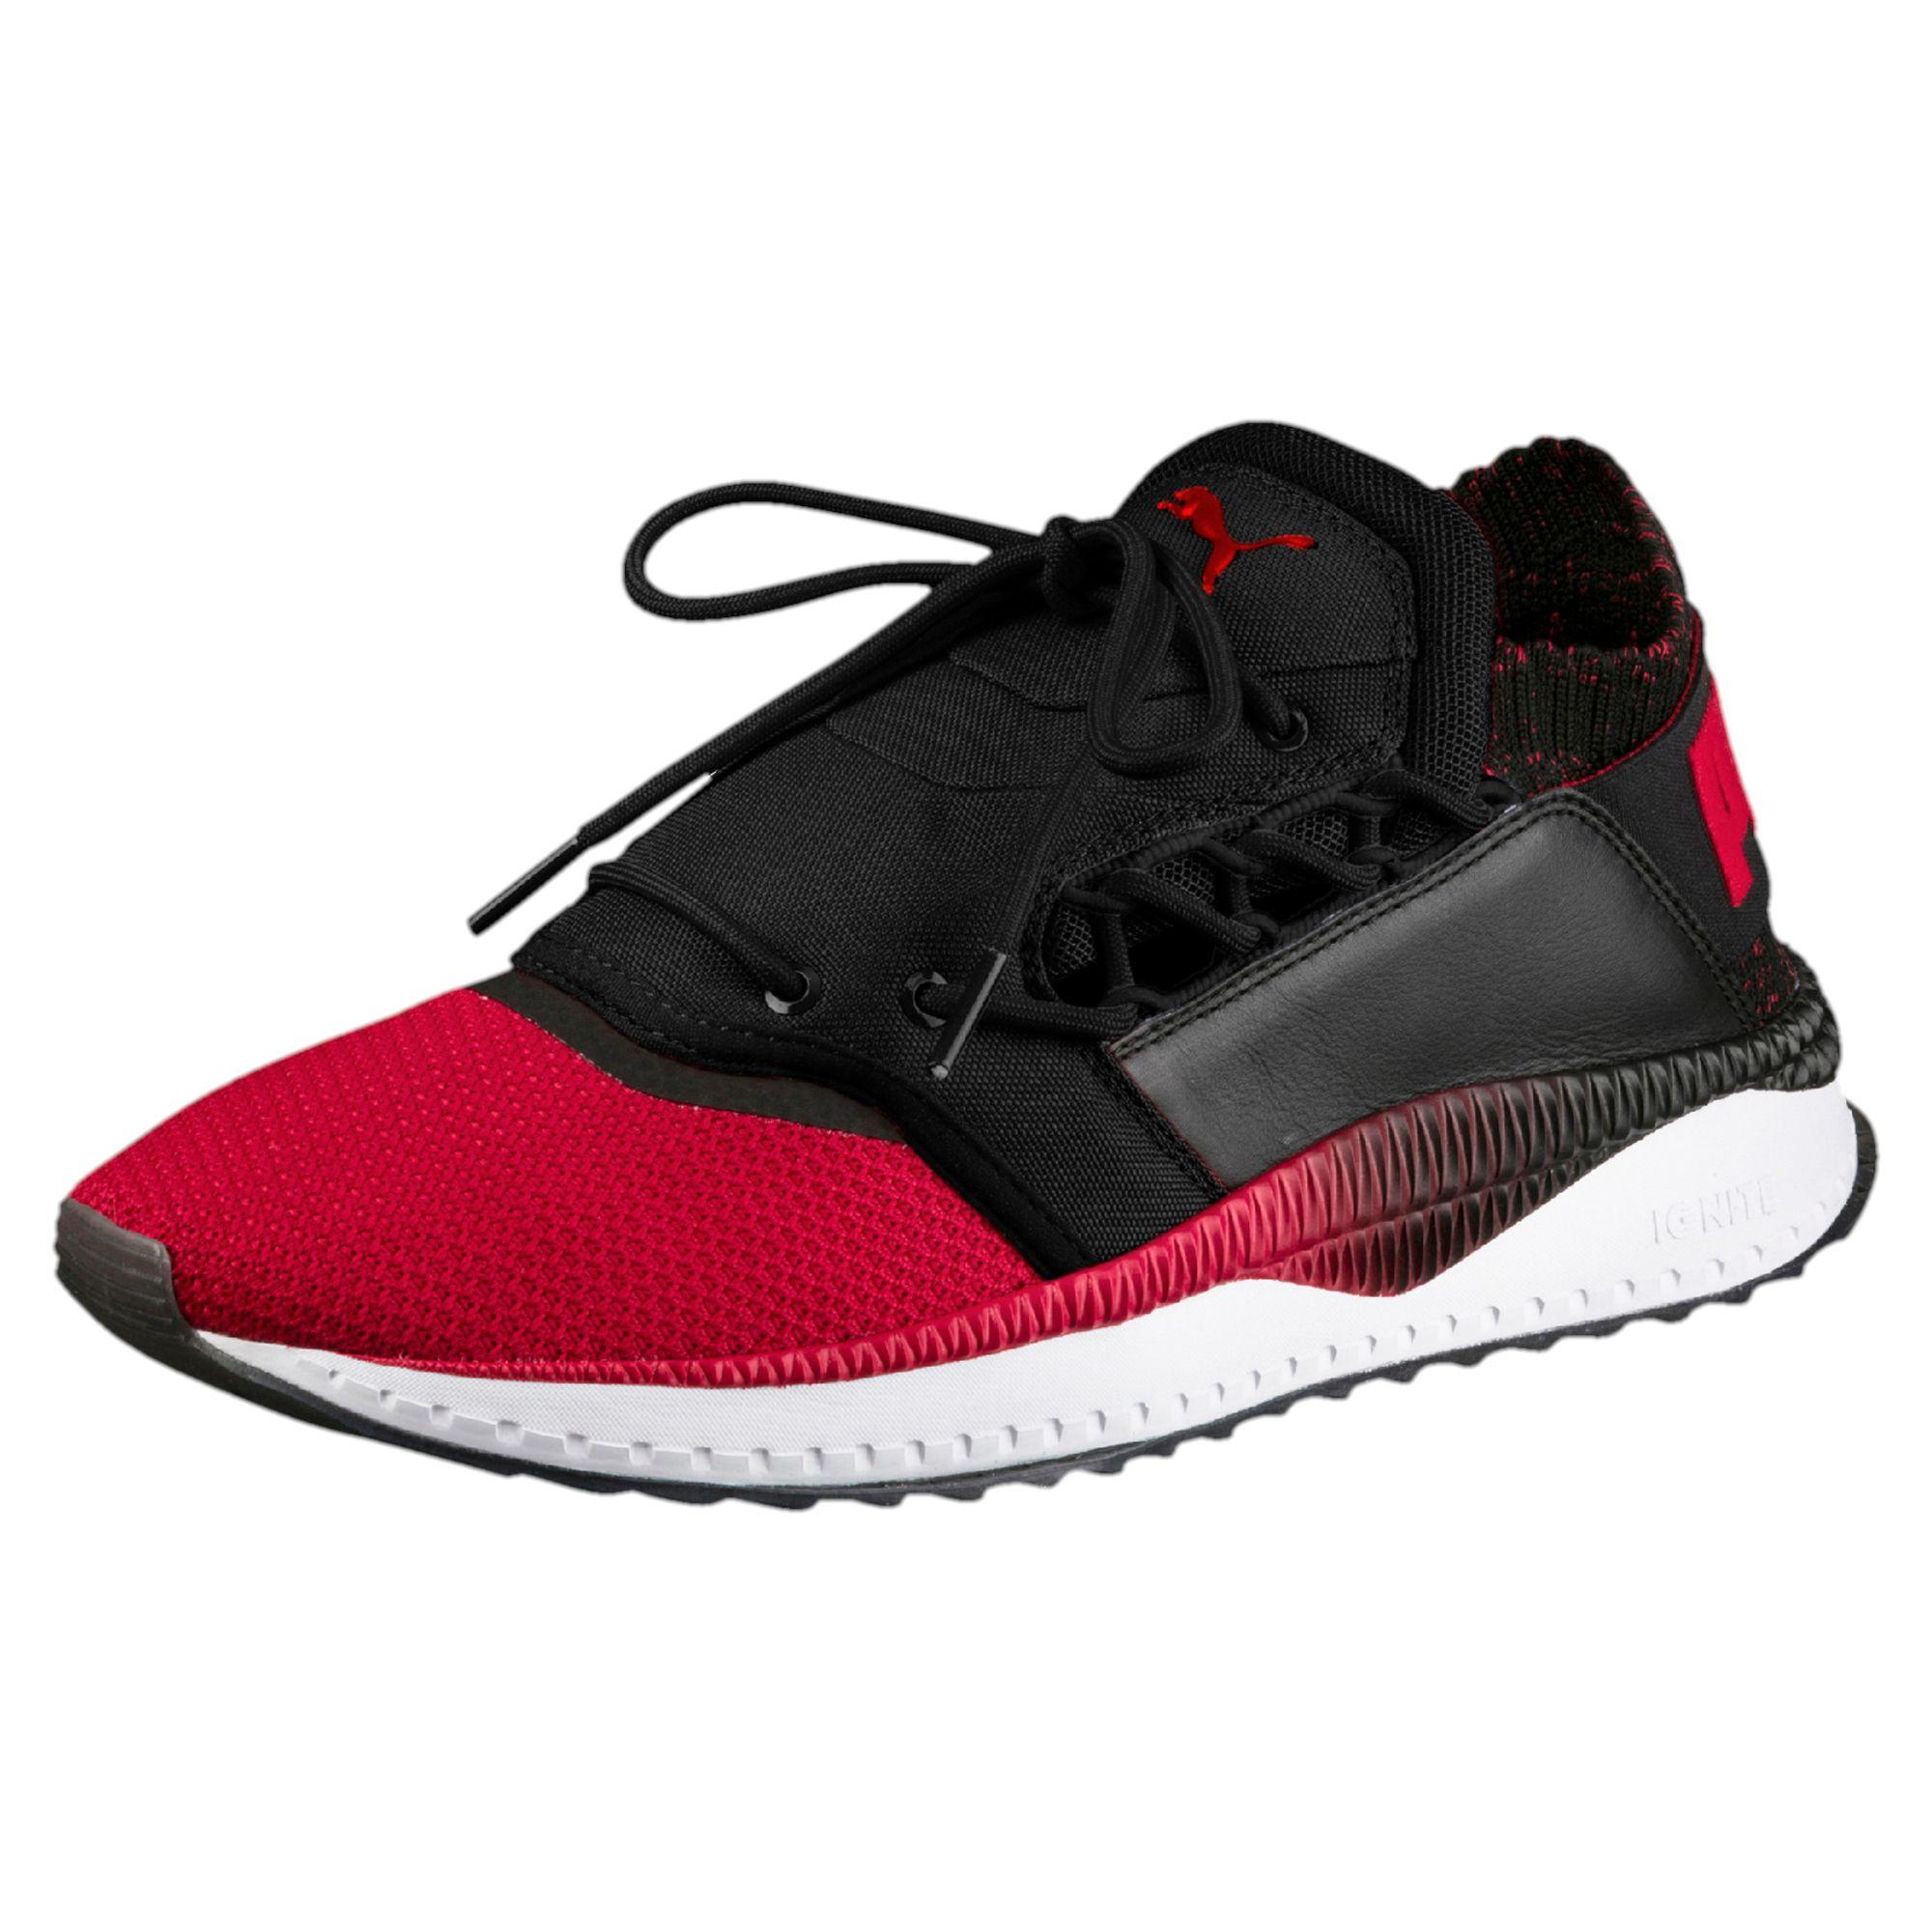 Puma Shoes Tsugi Shinsei Nido  Unisex